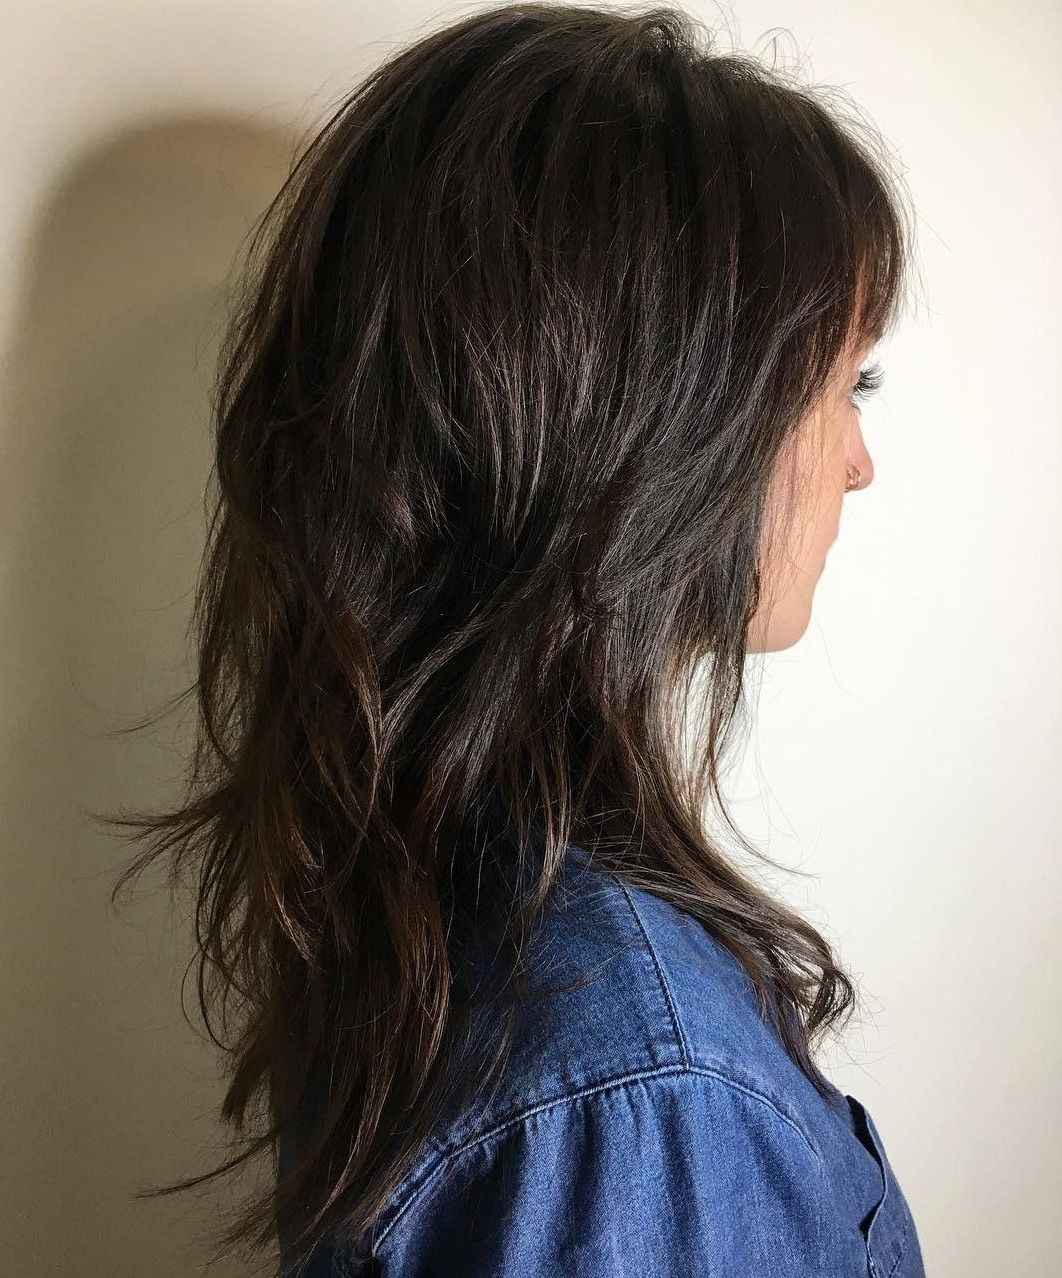 60 Lovely Long Shag Haircuts For Effortless Stylish Looks Pertaining To Most Recent Long Wispy Brunette Shag Haircuts (View 5 of 20)